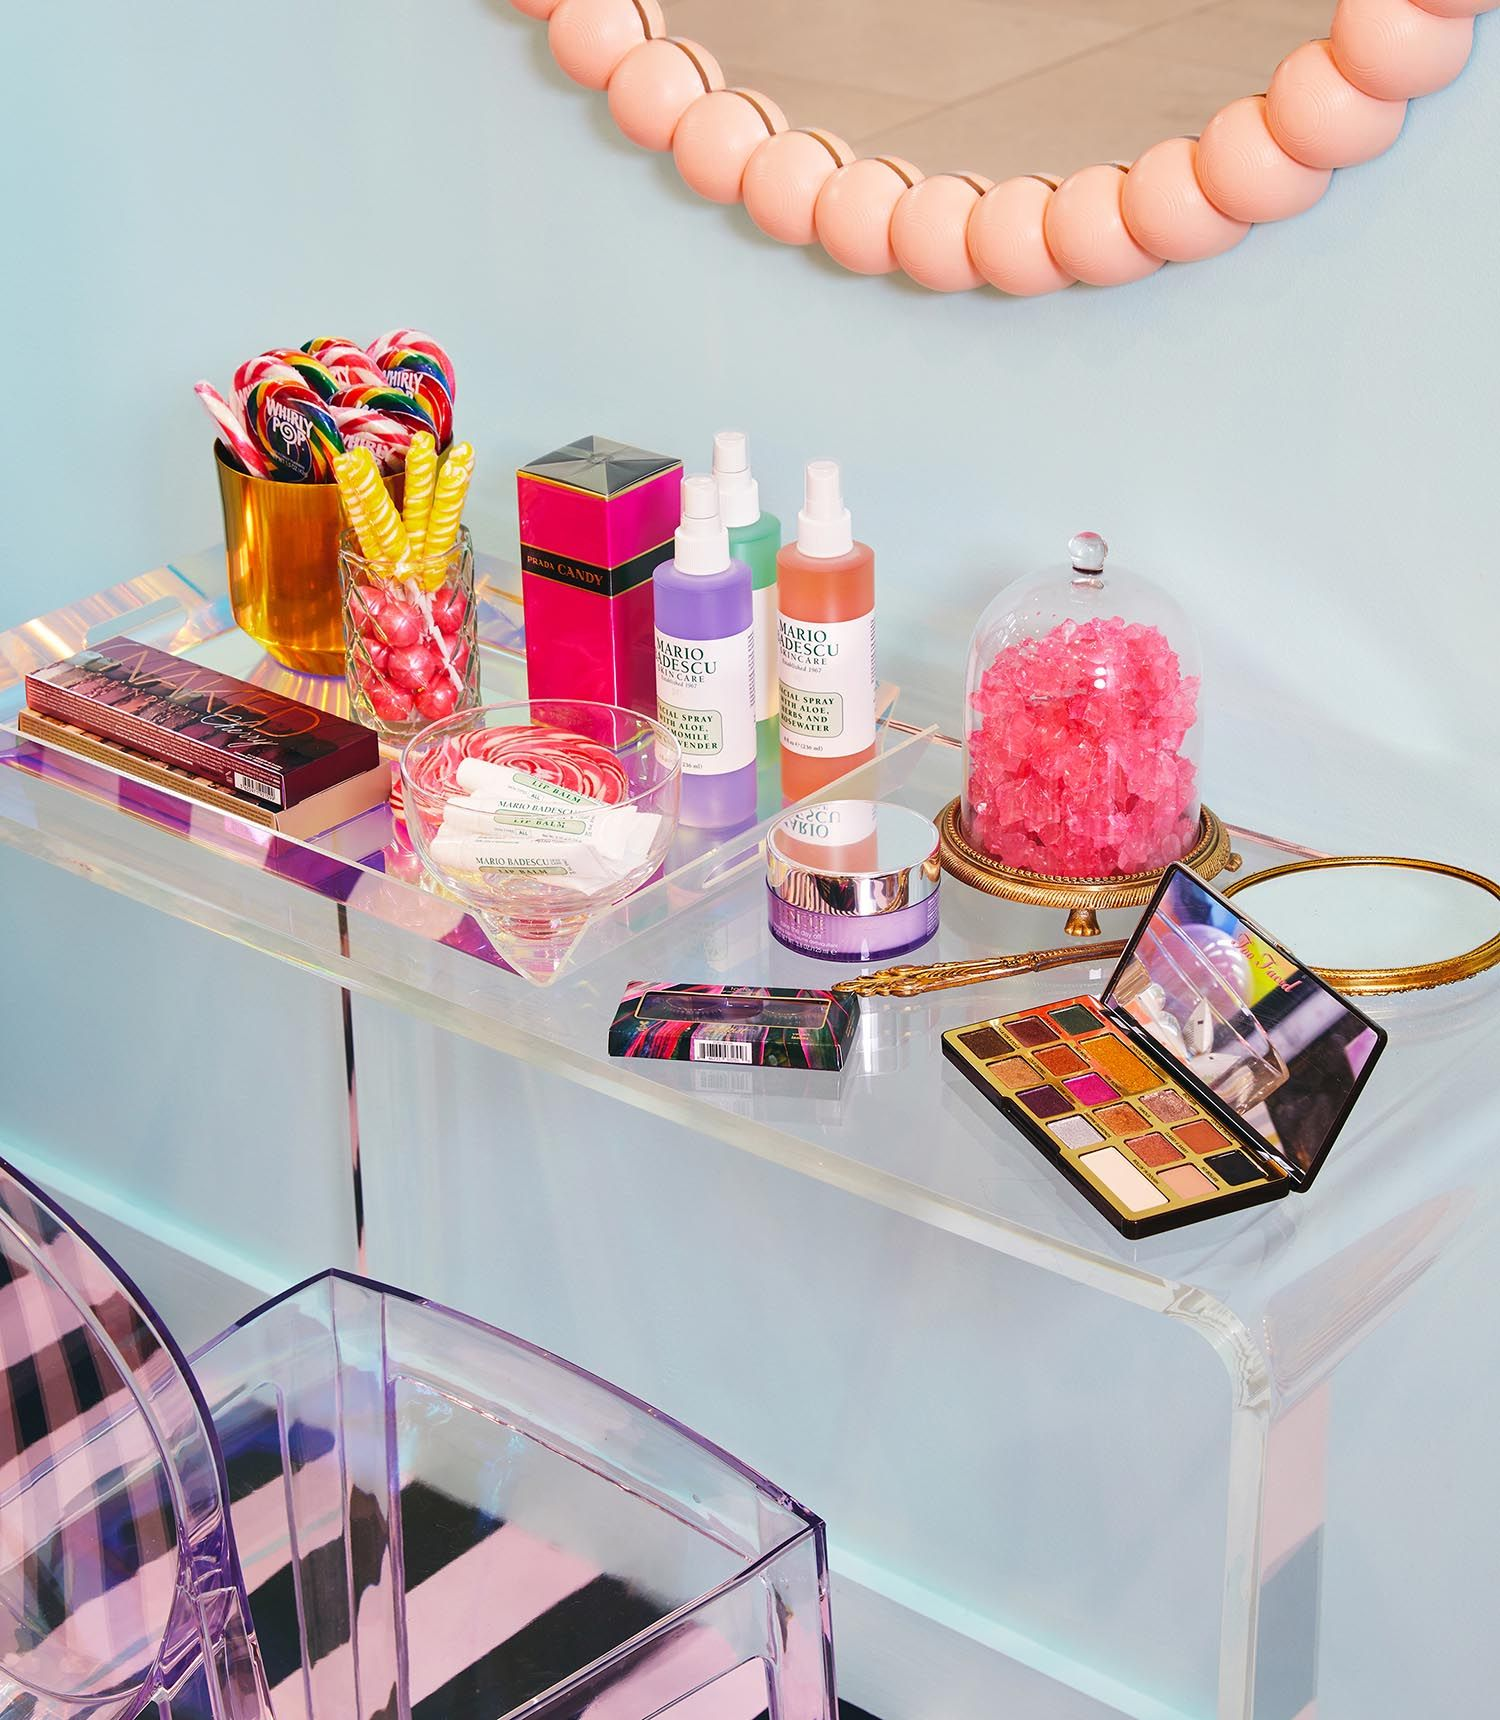 Custom shelving styled with product and accessories